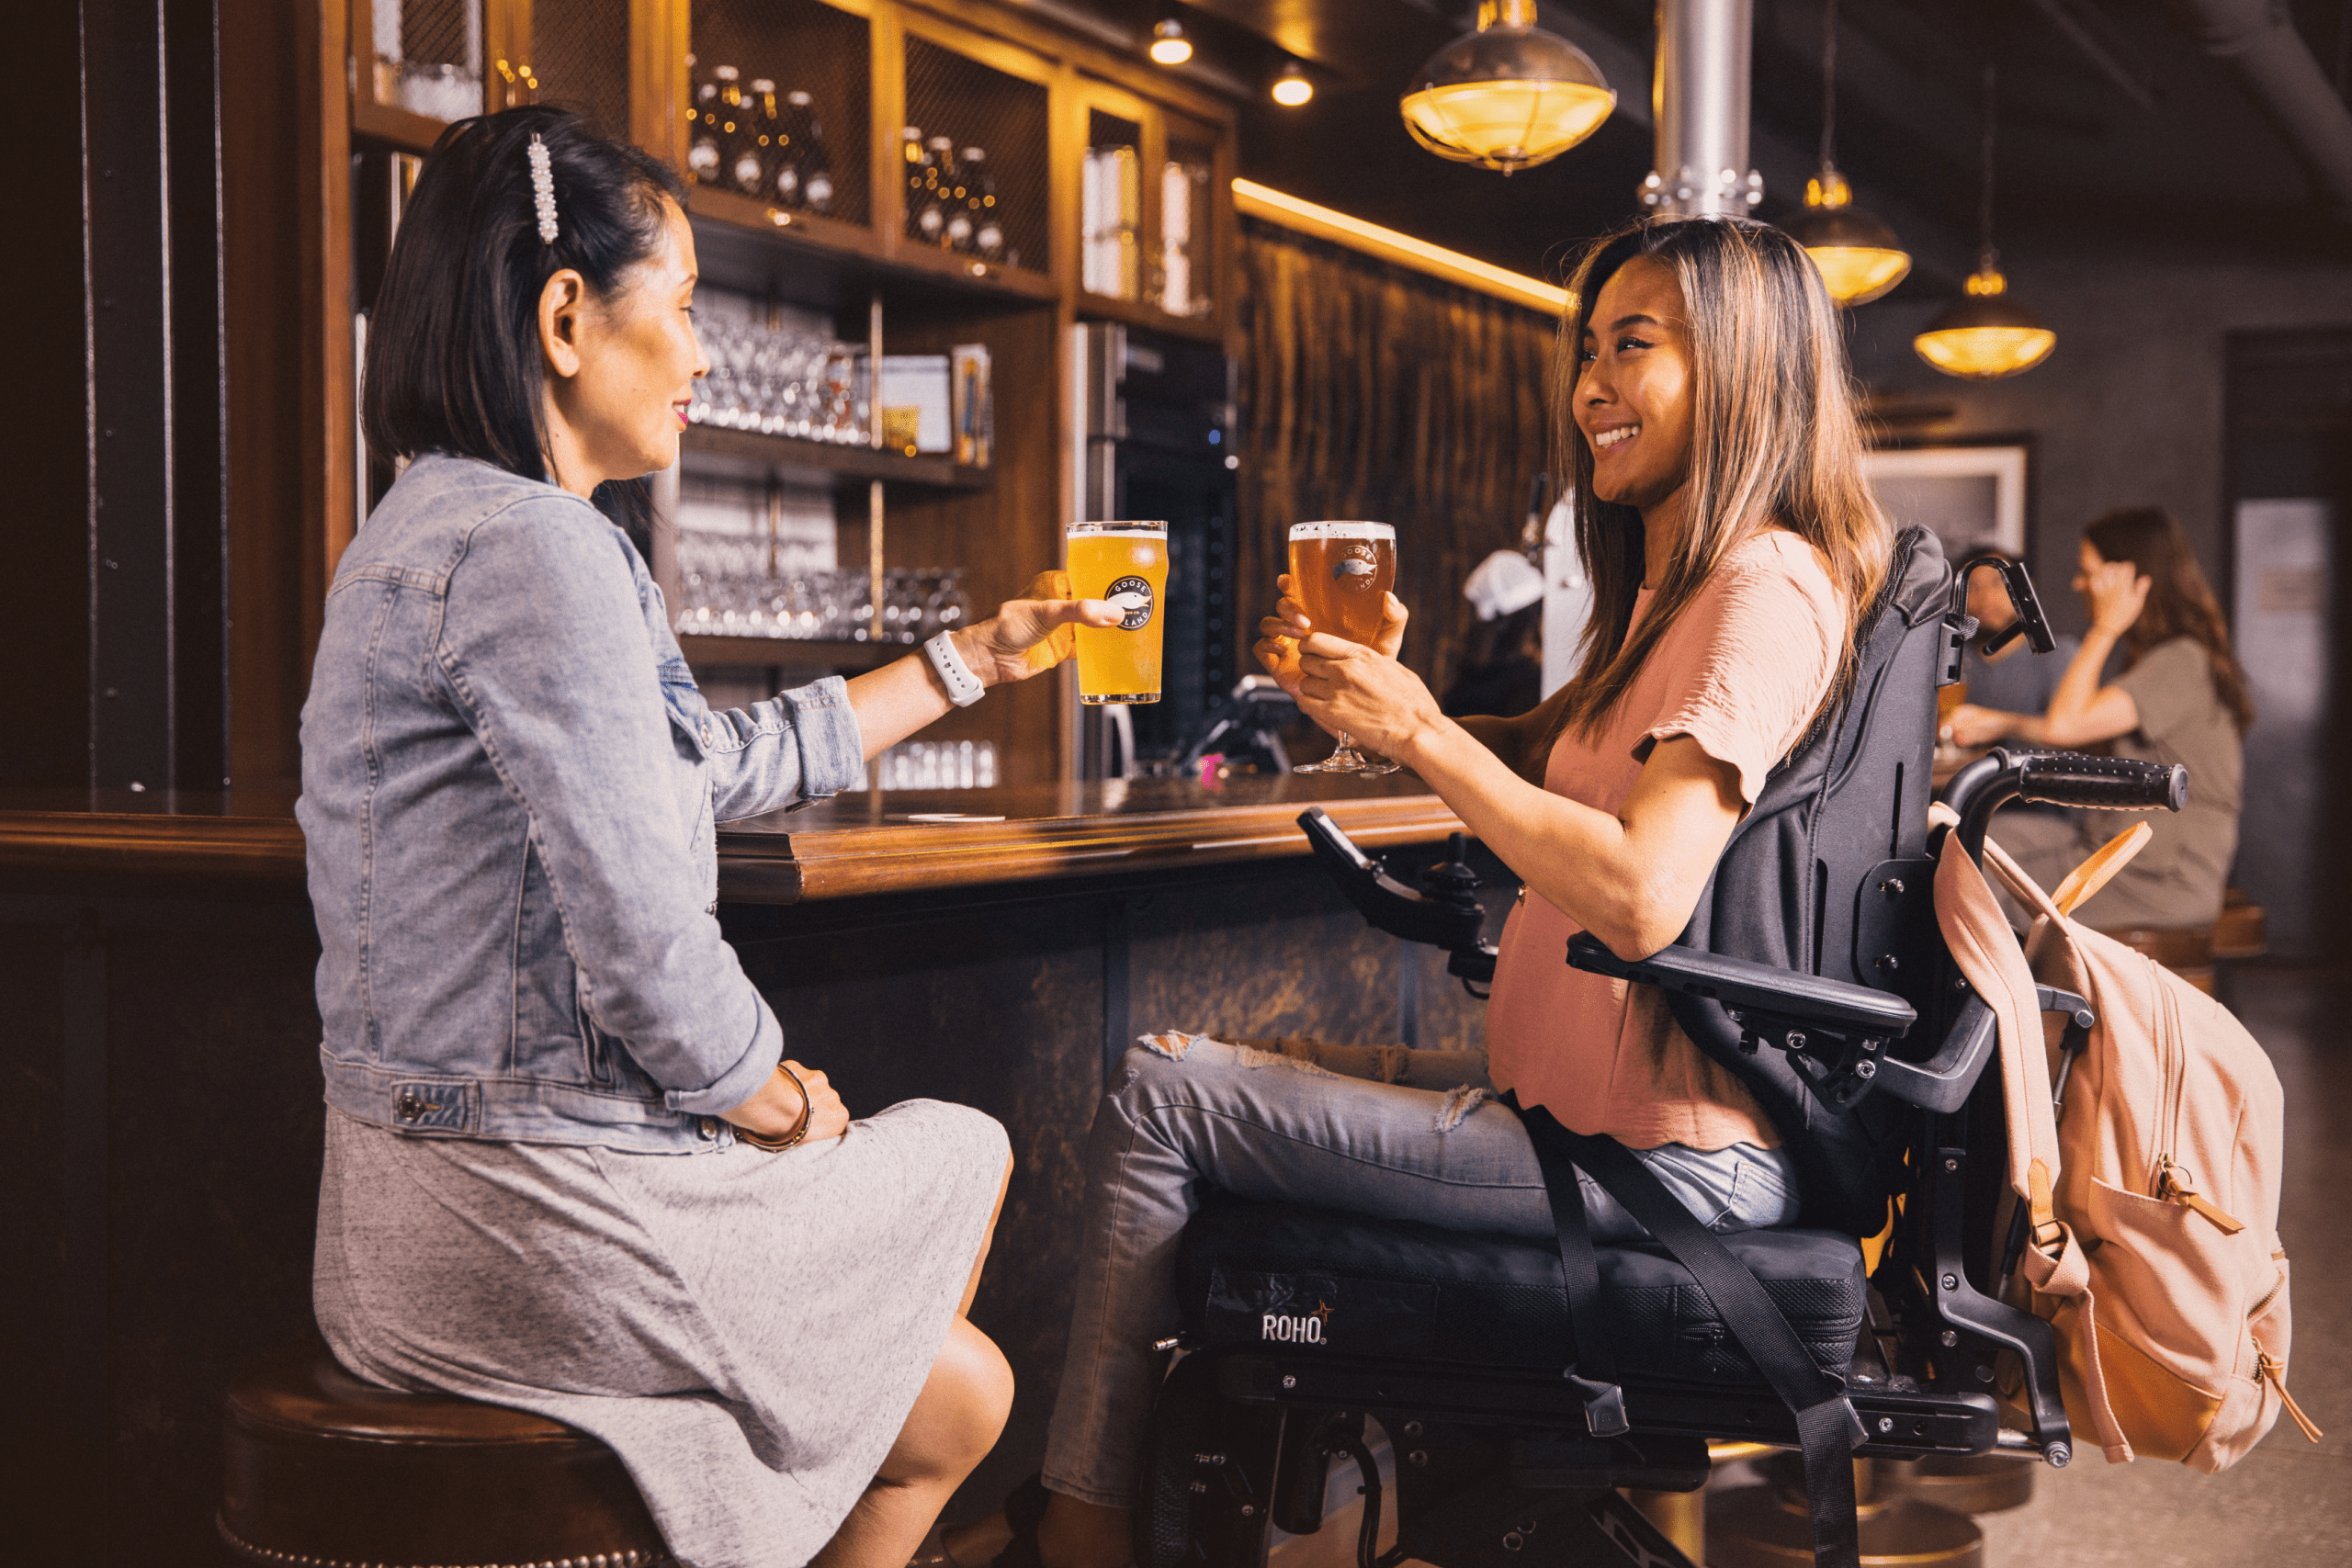 A woman in a wheelchair and her friend at a bar